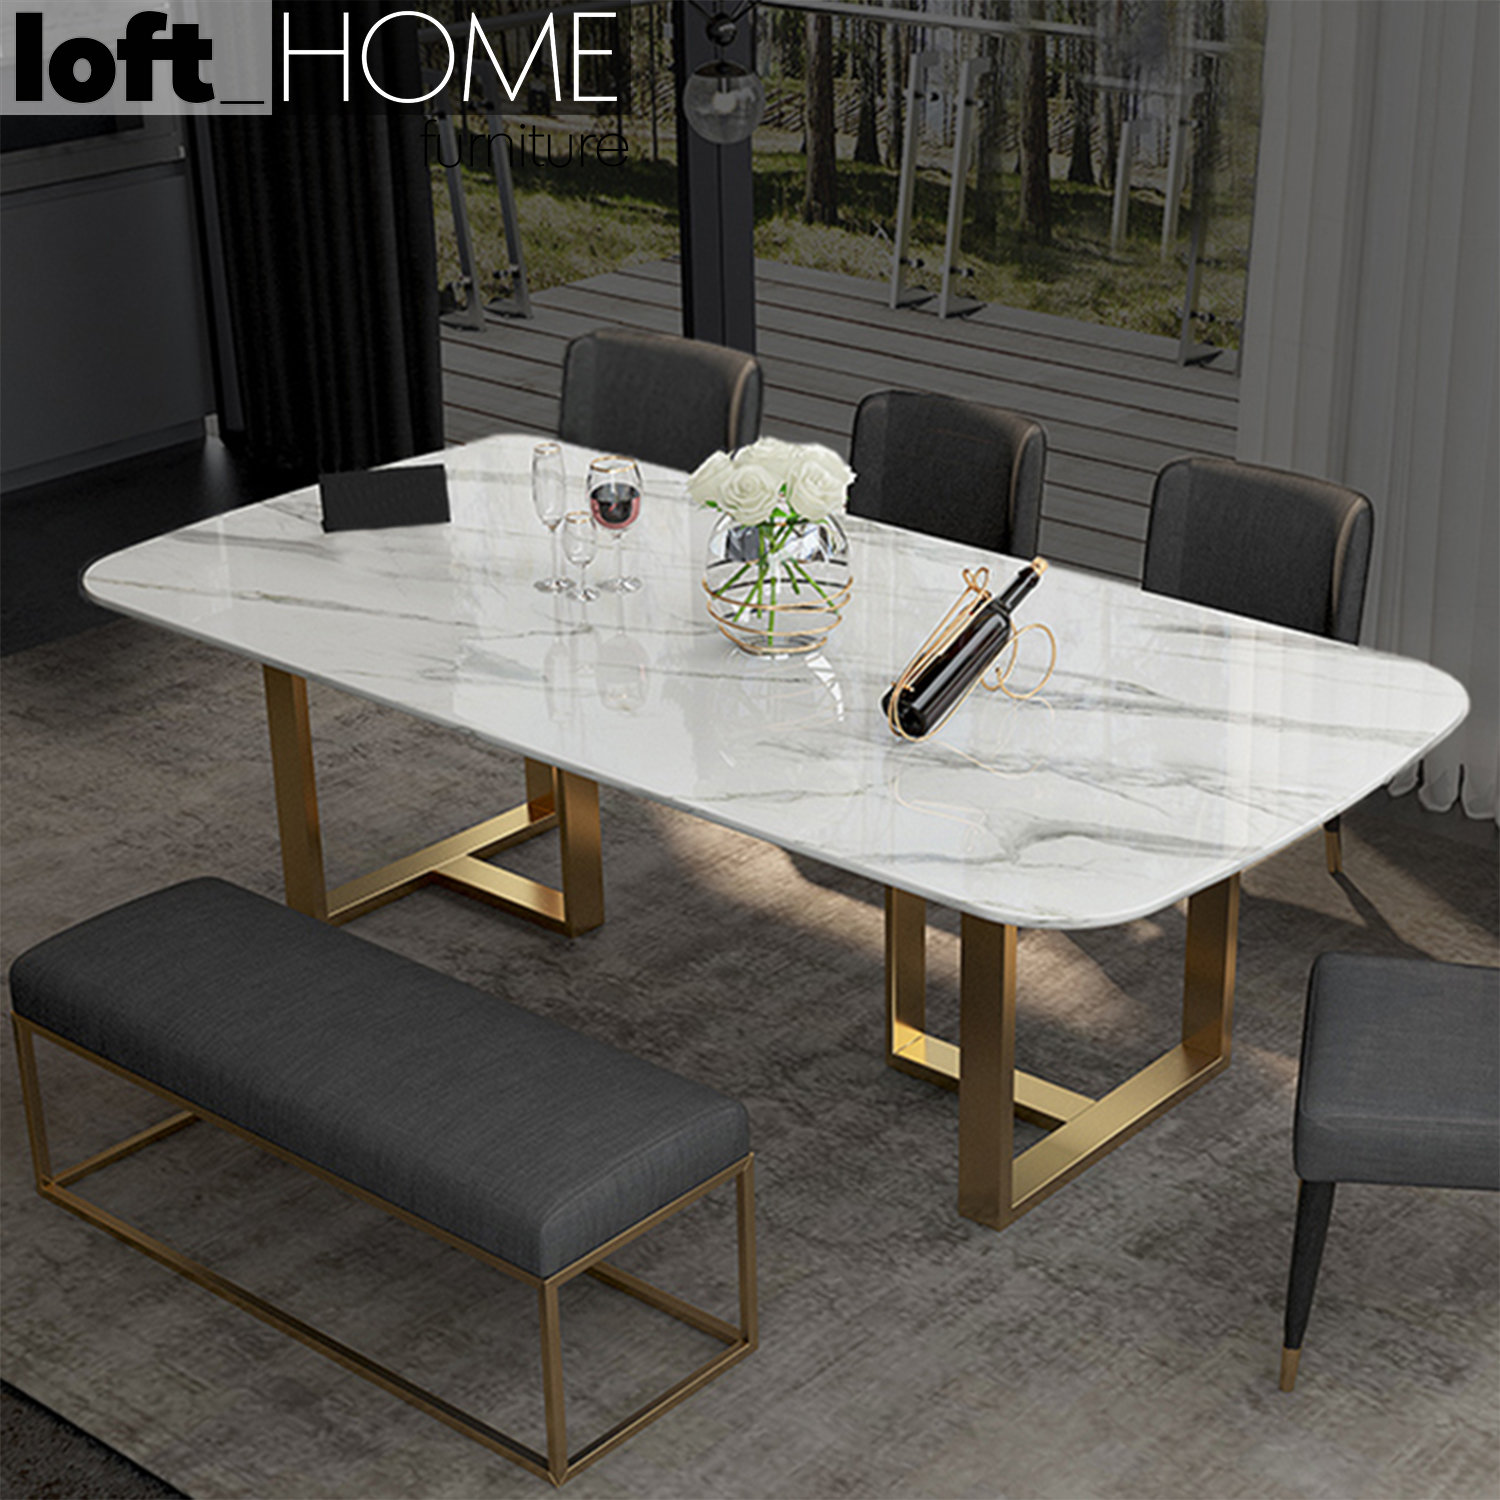 Picture of: Dining Table Joshua Lofthomefurniture